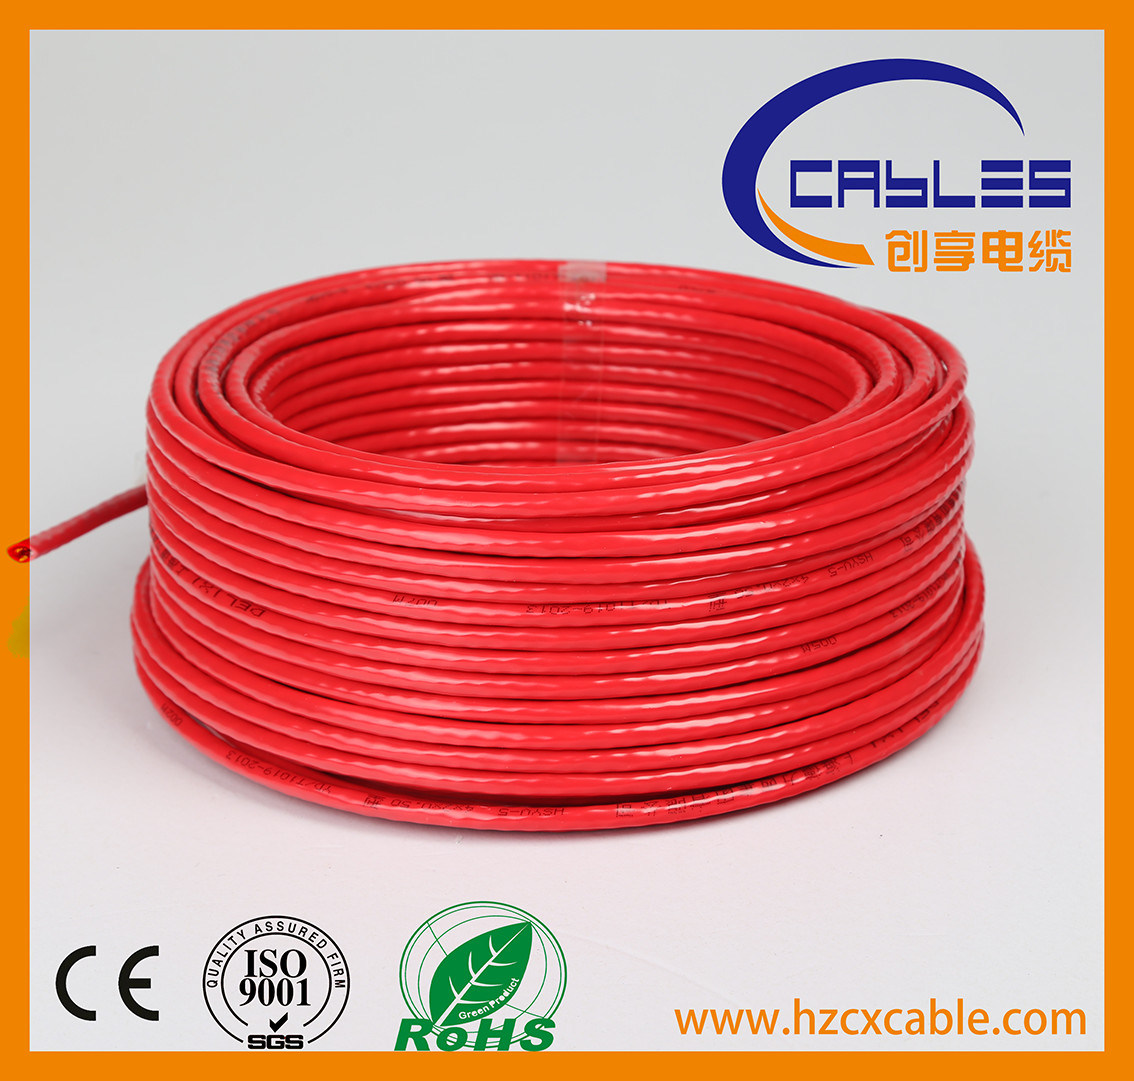 China Stranded Wire Telephone Cable 4cores 100m Roll How To A Alarm